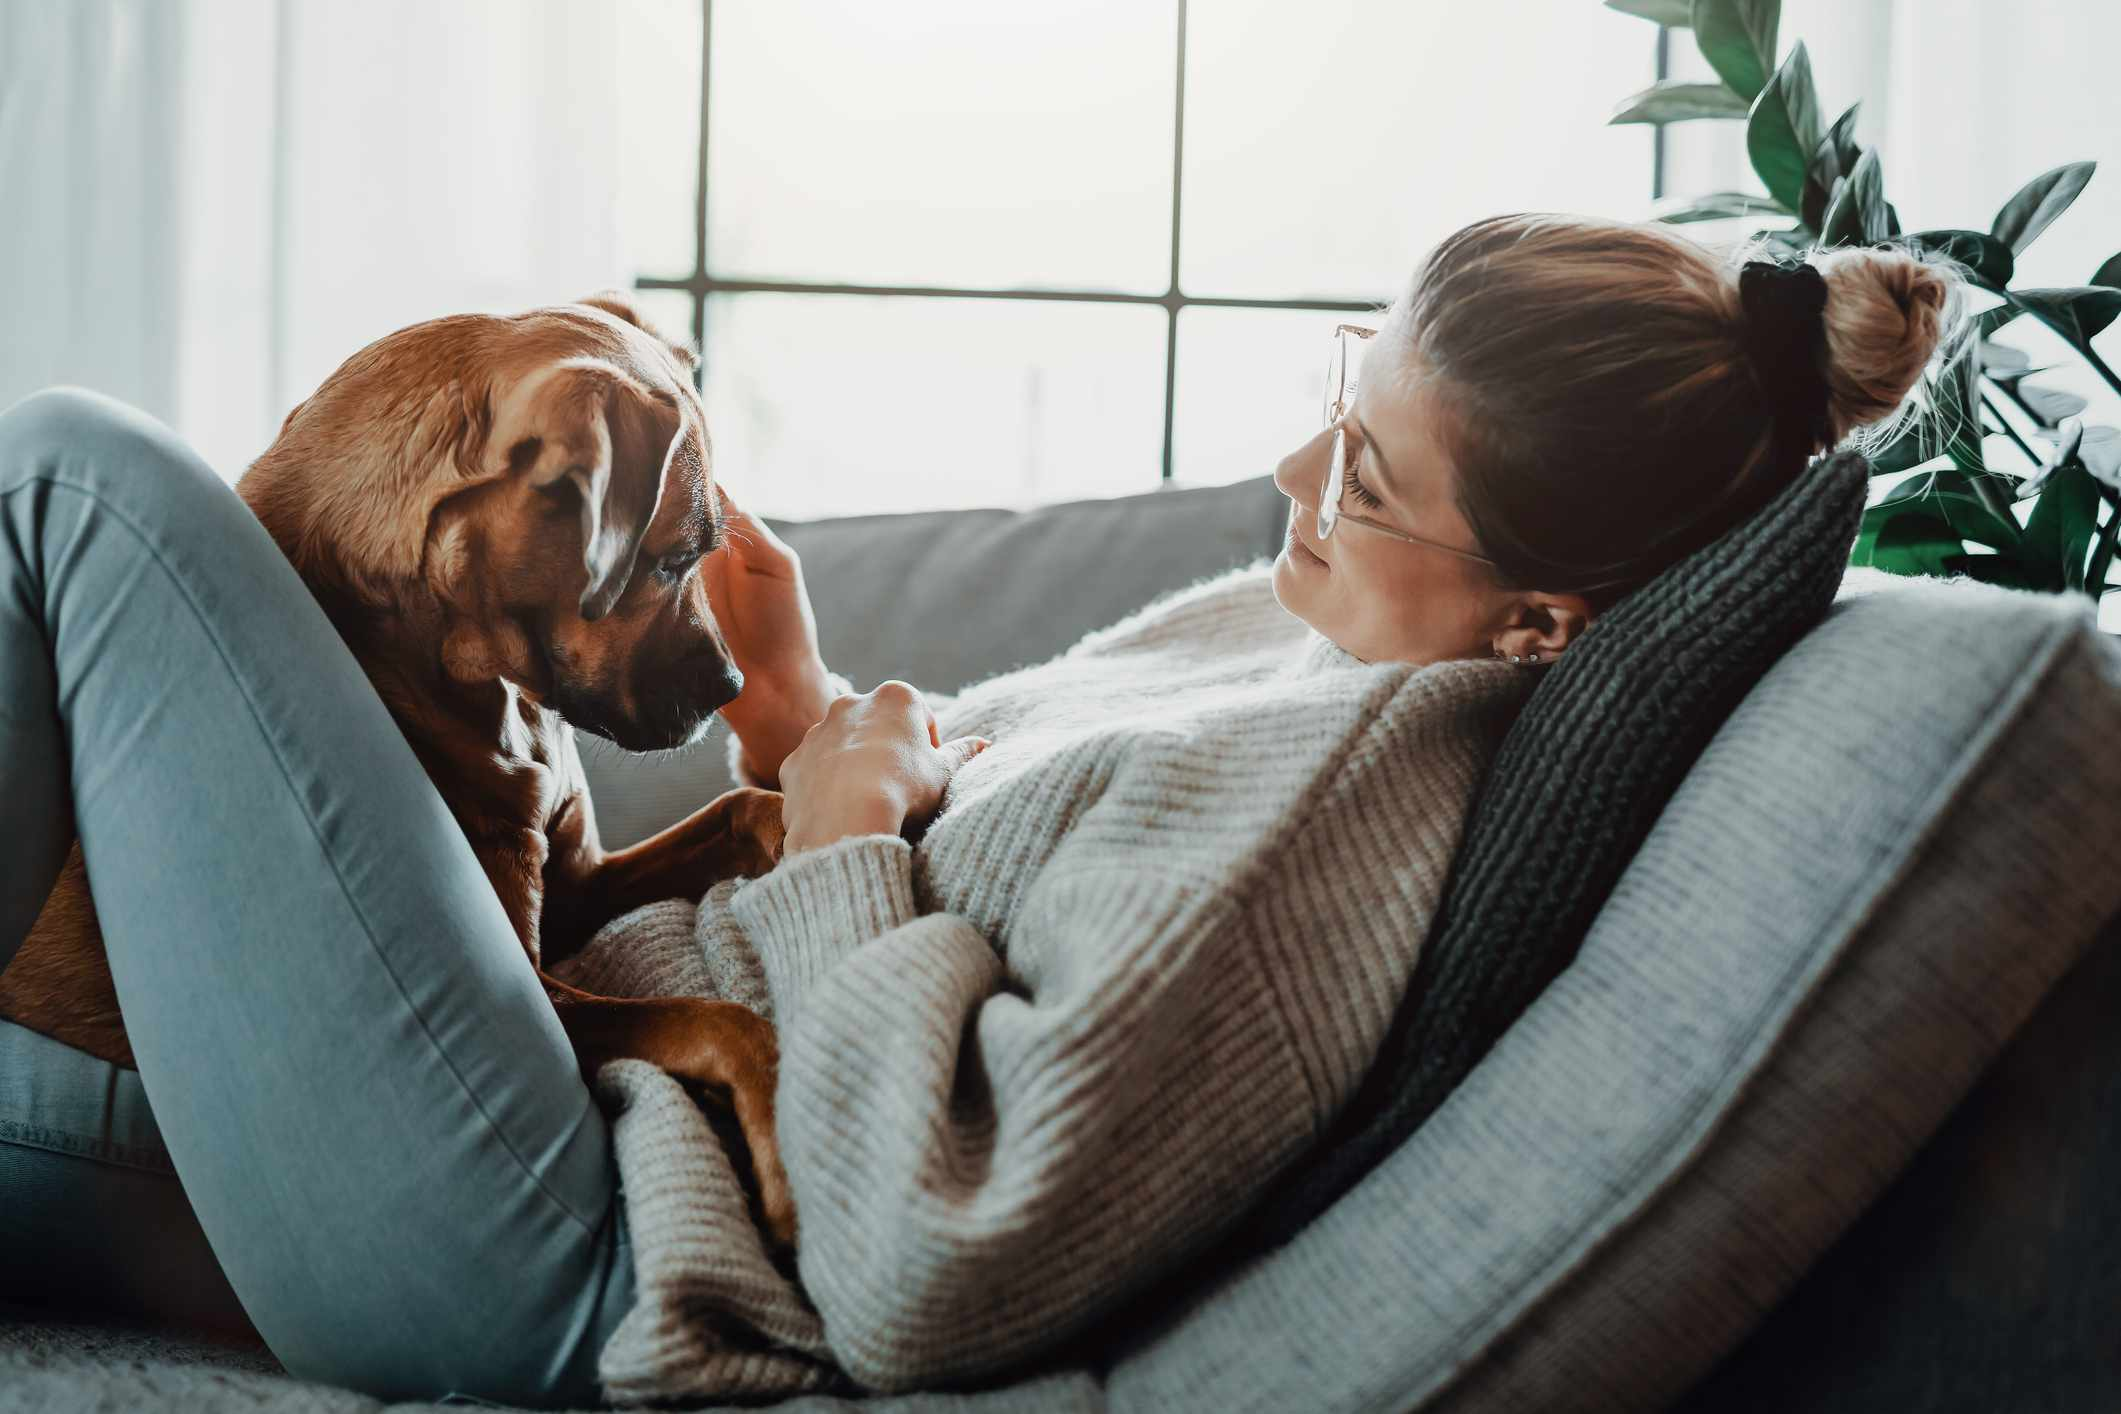 woman and dog on couch